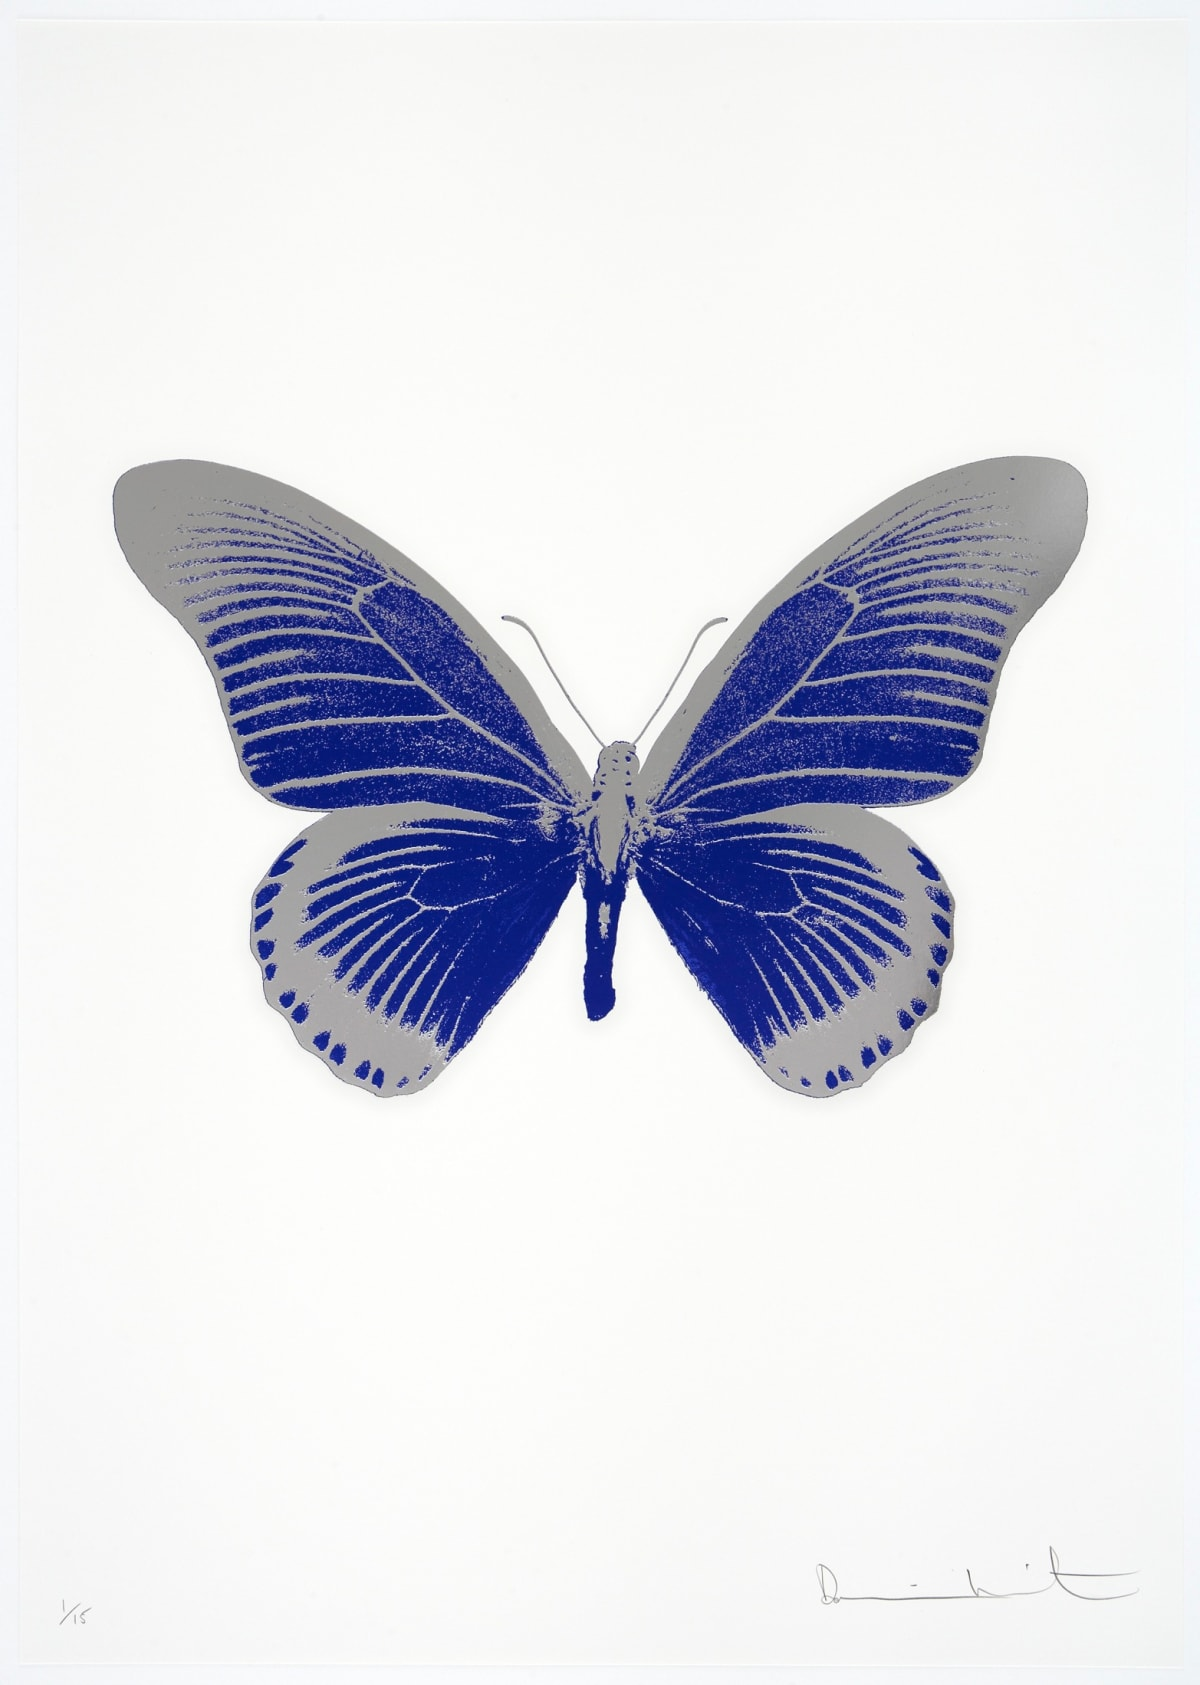 Damien Hirst The Souls IV - Westminster Blue/Silver Gloss, 2010 2 colour foil block on 300gsm Arches 88 archival paper. Signed and numbered. Published by Paul Stolper and Other Criteria 72 x 51cm OC7983 / 1418-6 Edition of 15